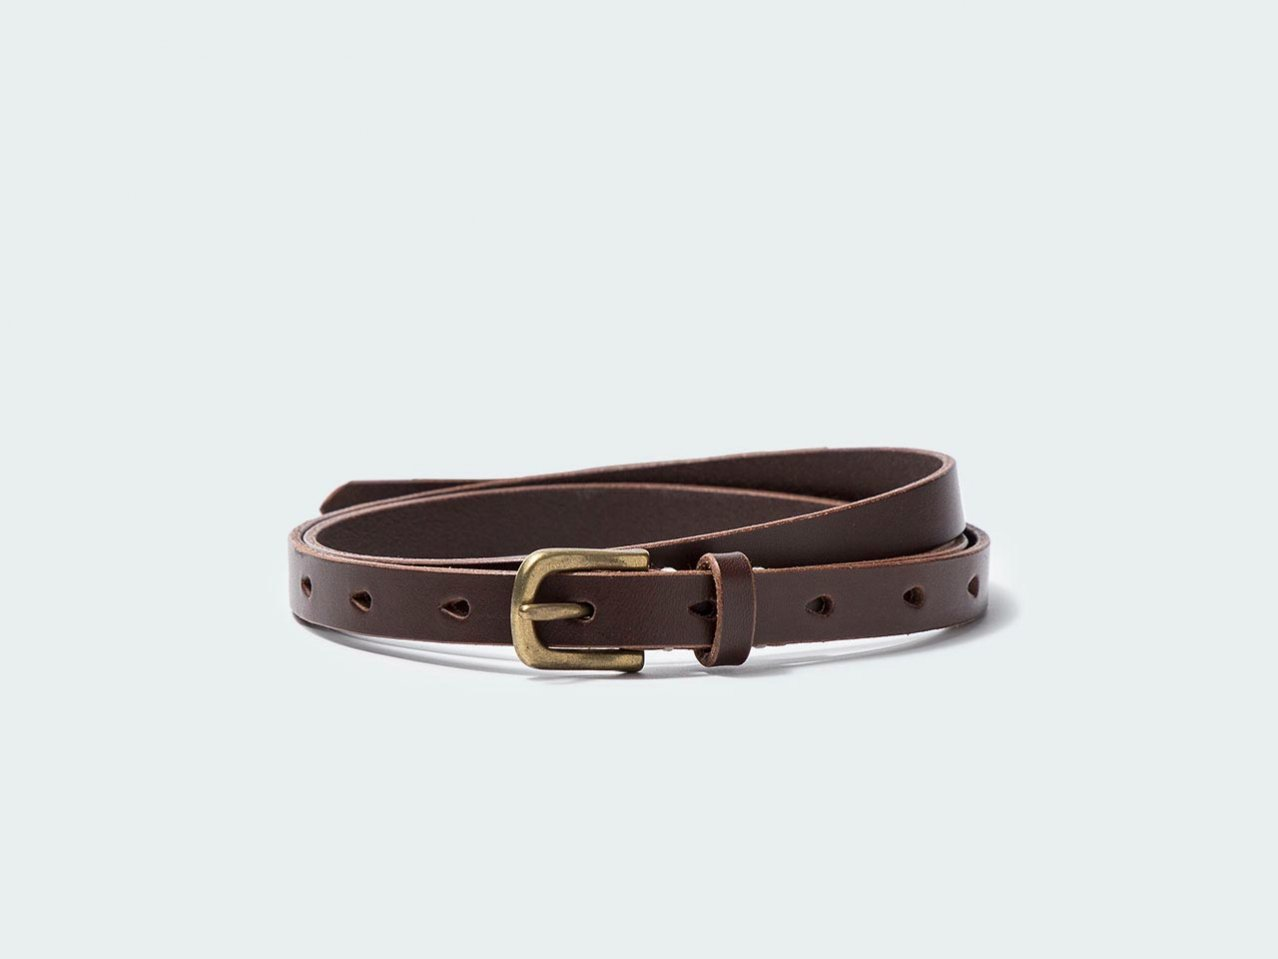 NARROW STANDARD BELT 15 / DARK BROWN